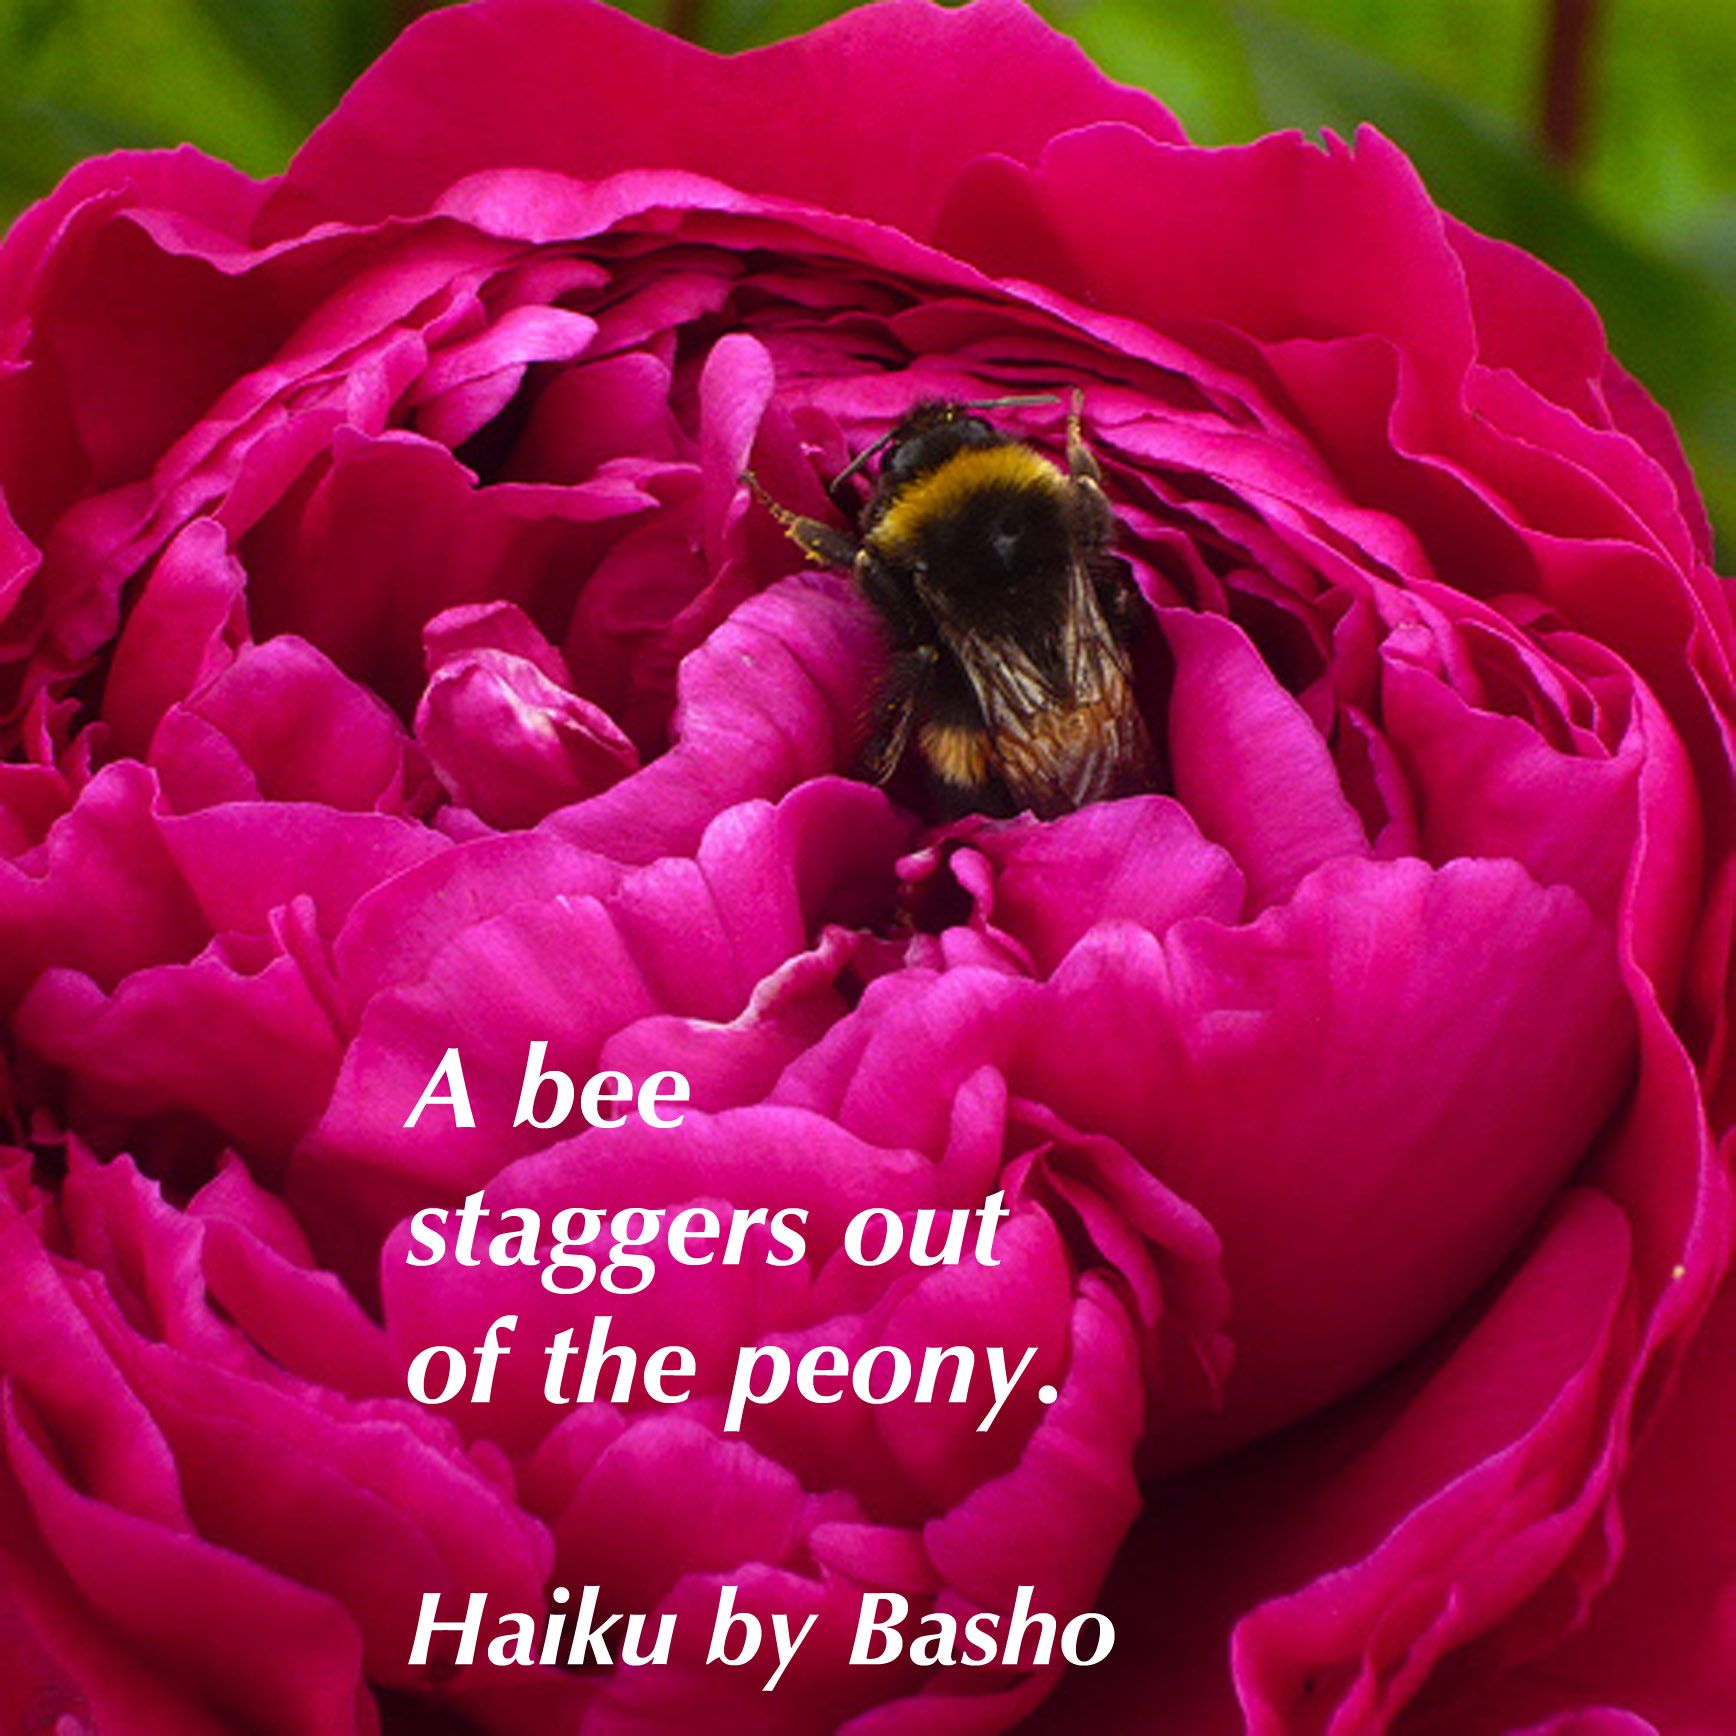 A bee staggers out of the peony